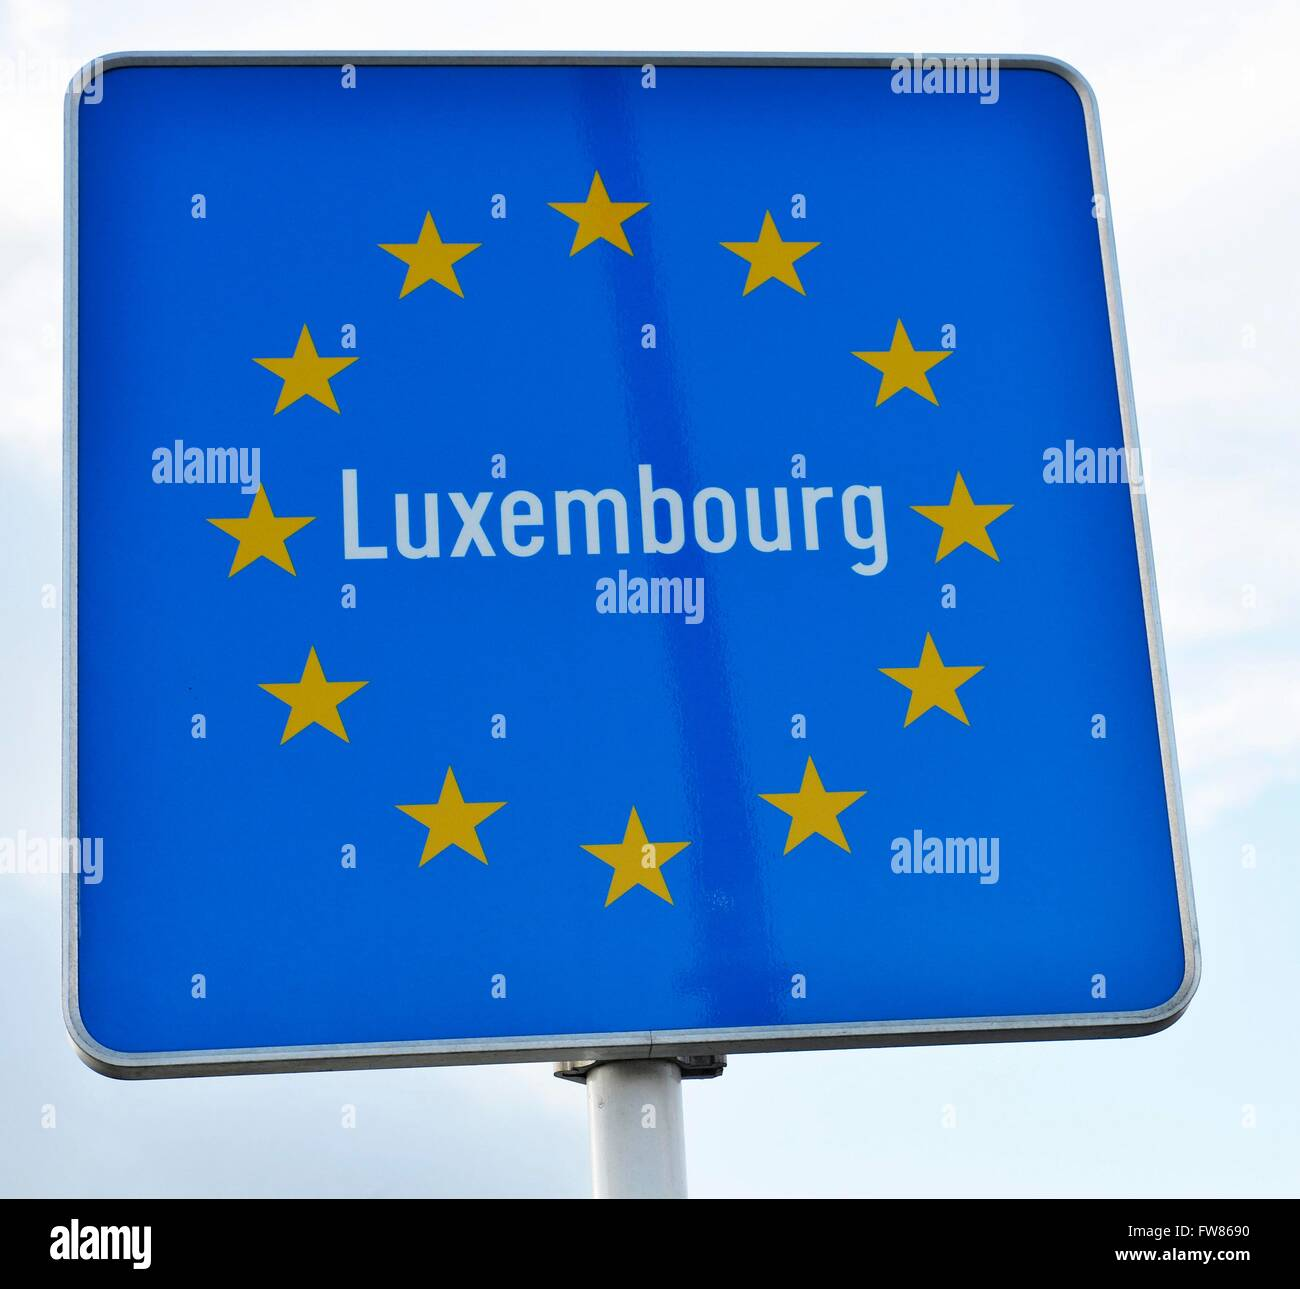 Border sign Luxembourg in Schengen, March 7, 2016. - Stock Image